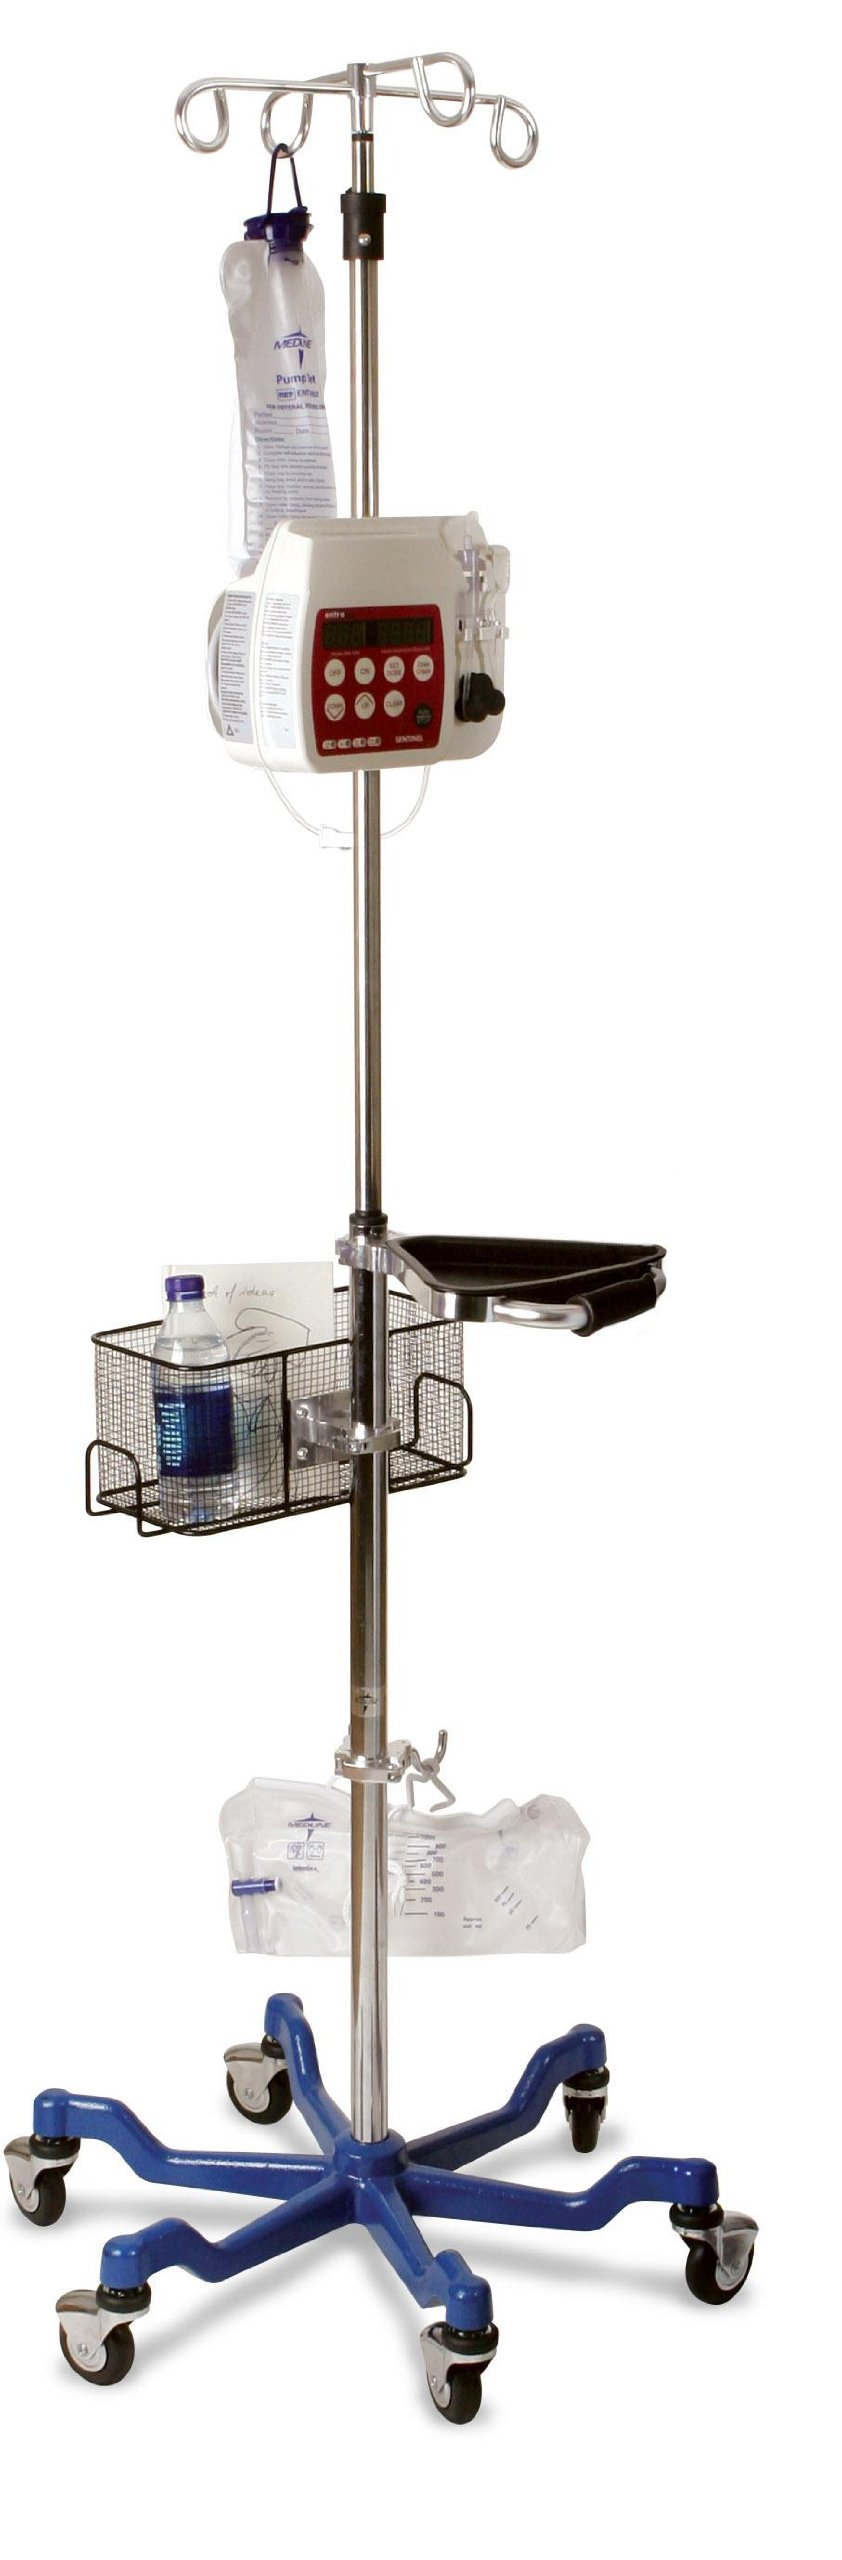 Medline MDS80600 Six Leg Heavy Duty IV Pole, Stainless Steel, Latex Free, 73'' to 99.5'' Adjustable Height (Pack of 2)